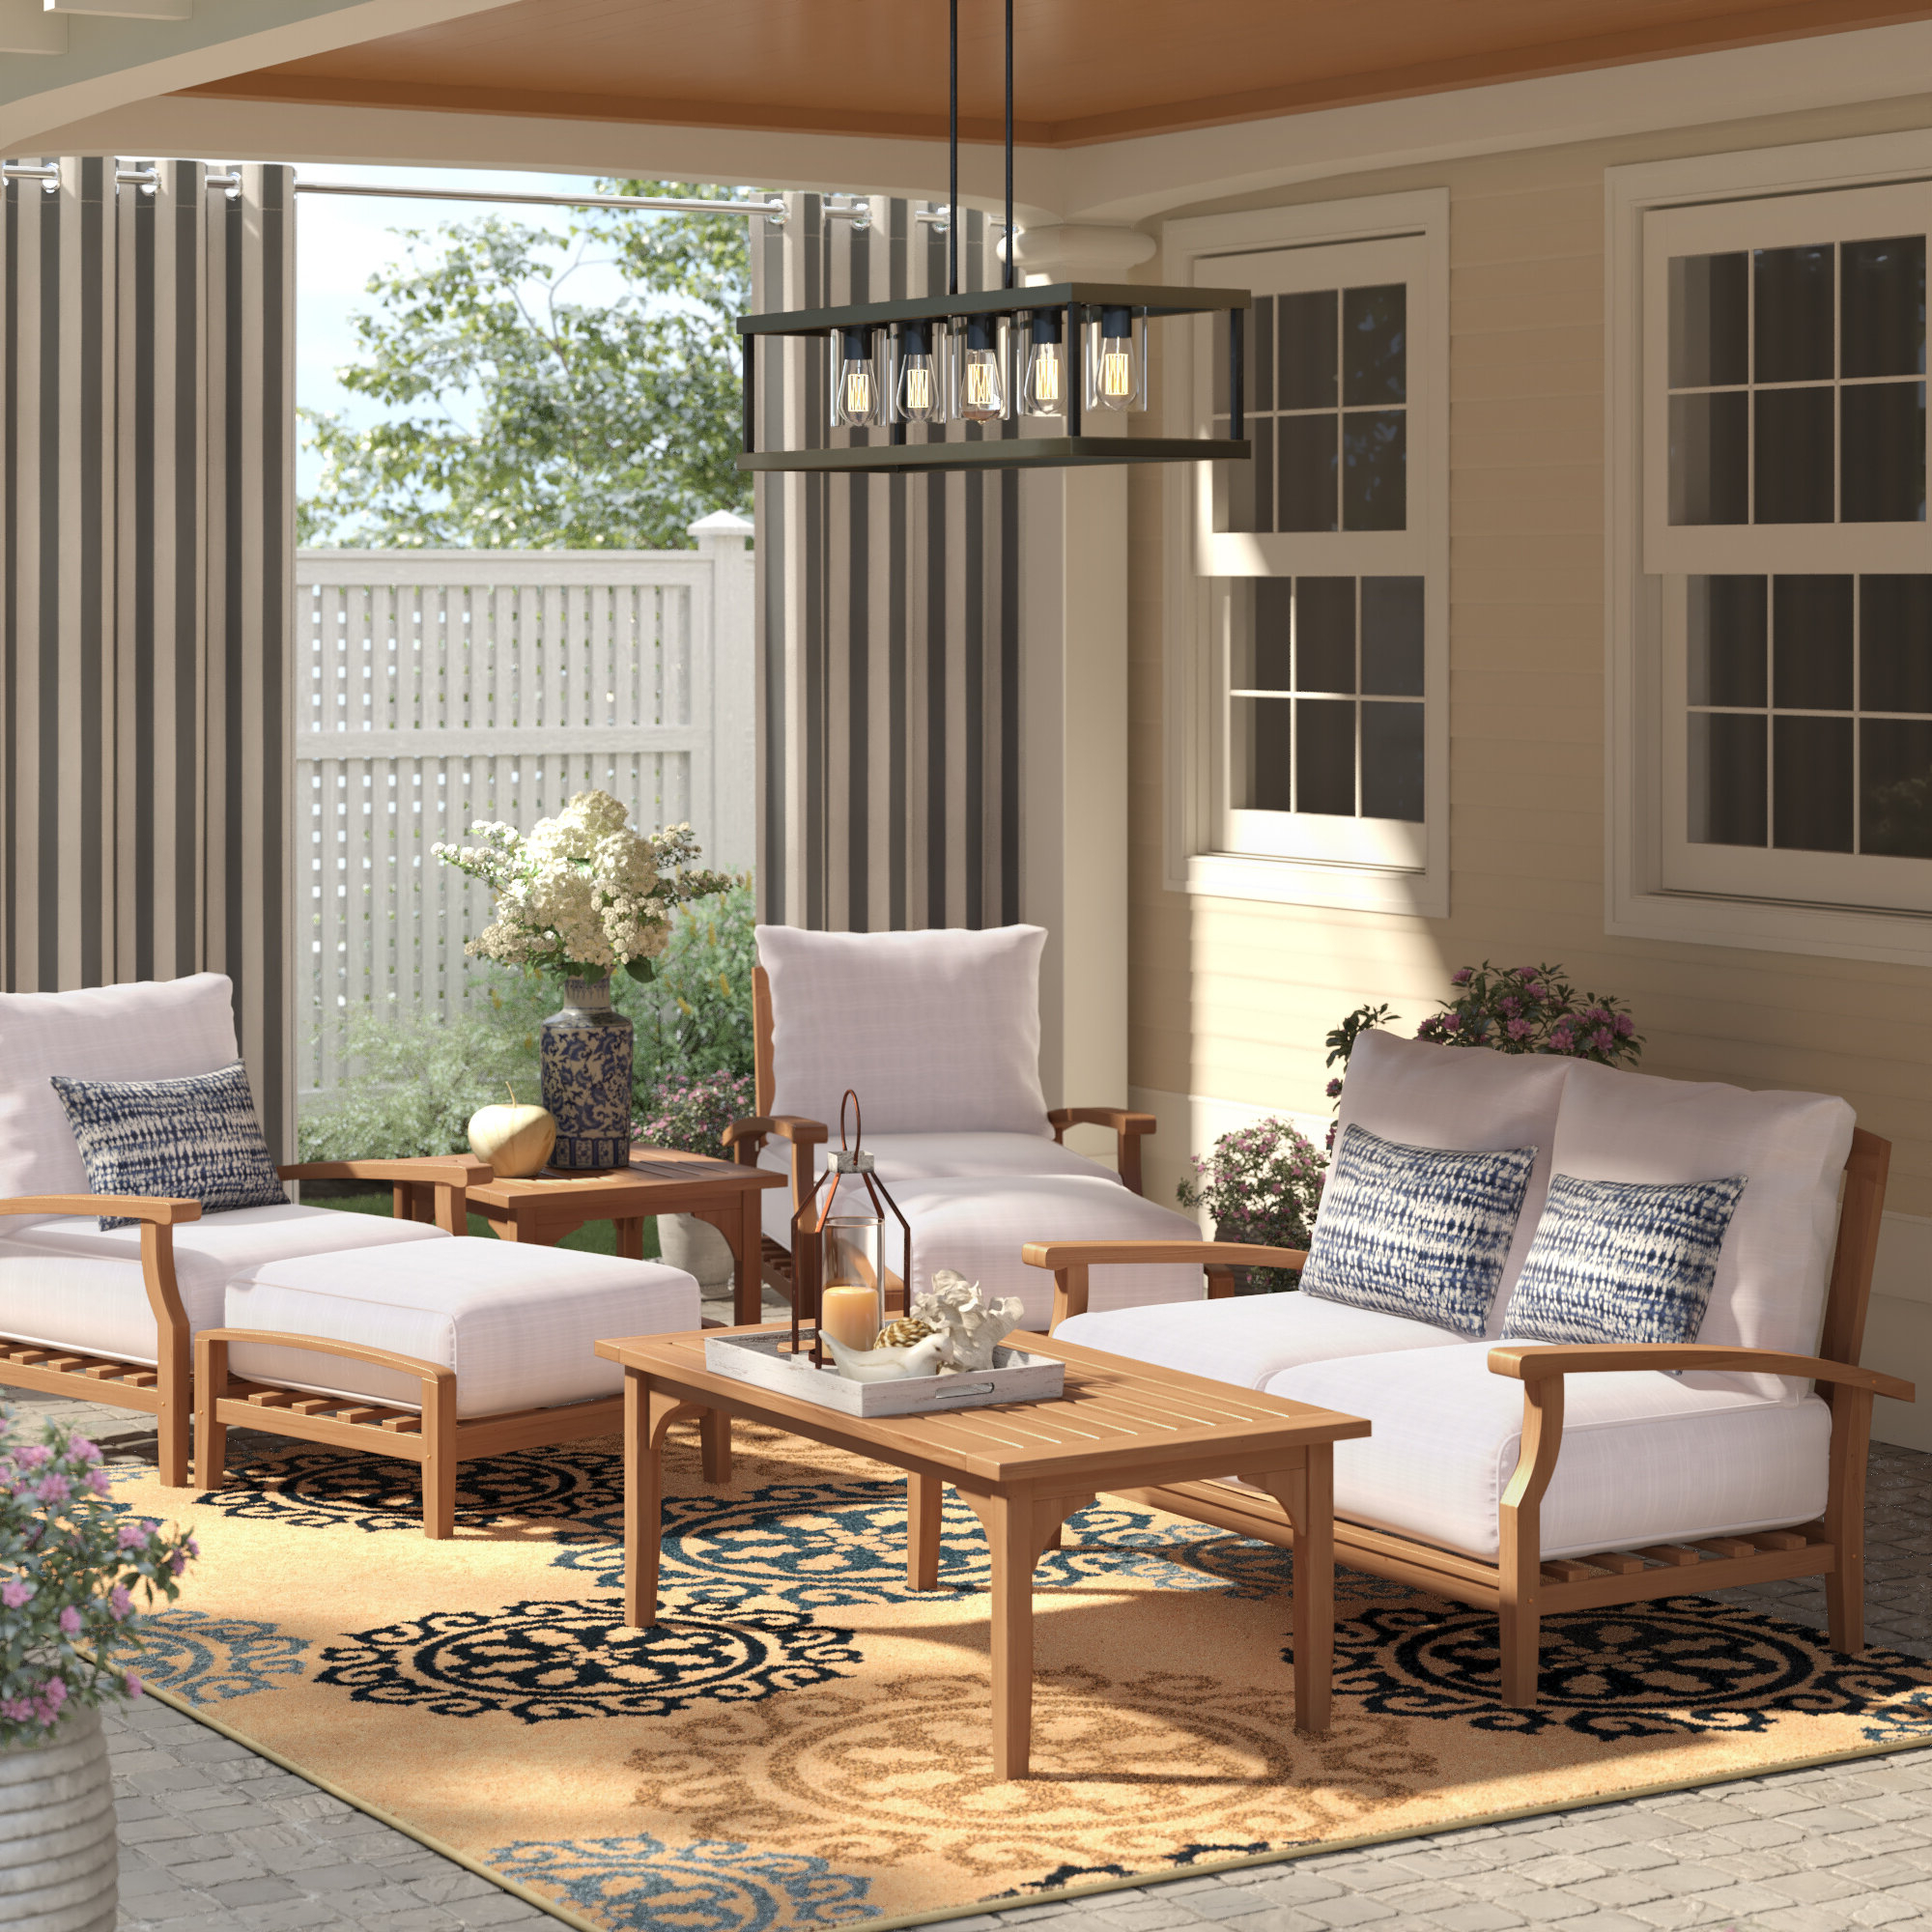 Summerton 7 Piece Teak Sofa Seating Group With Cushions Inside Popular Summerton Teak Patio Sofas With Cushions (View 14 of 20)